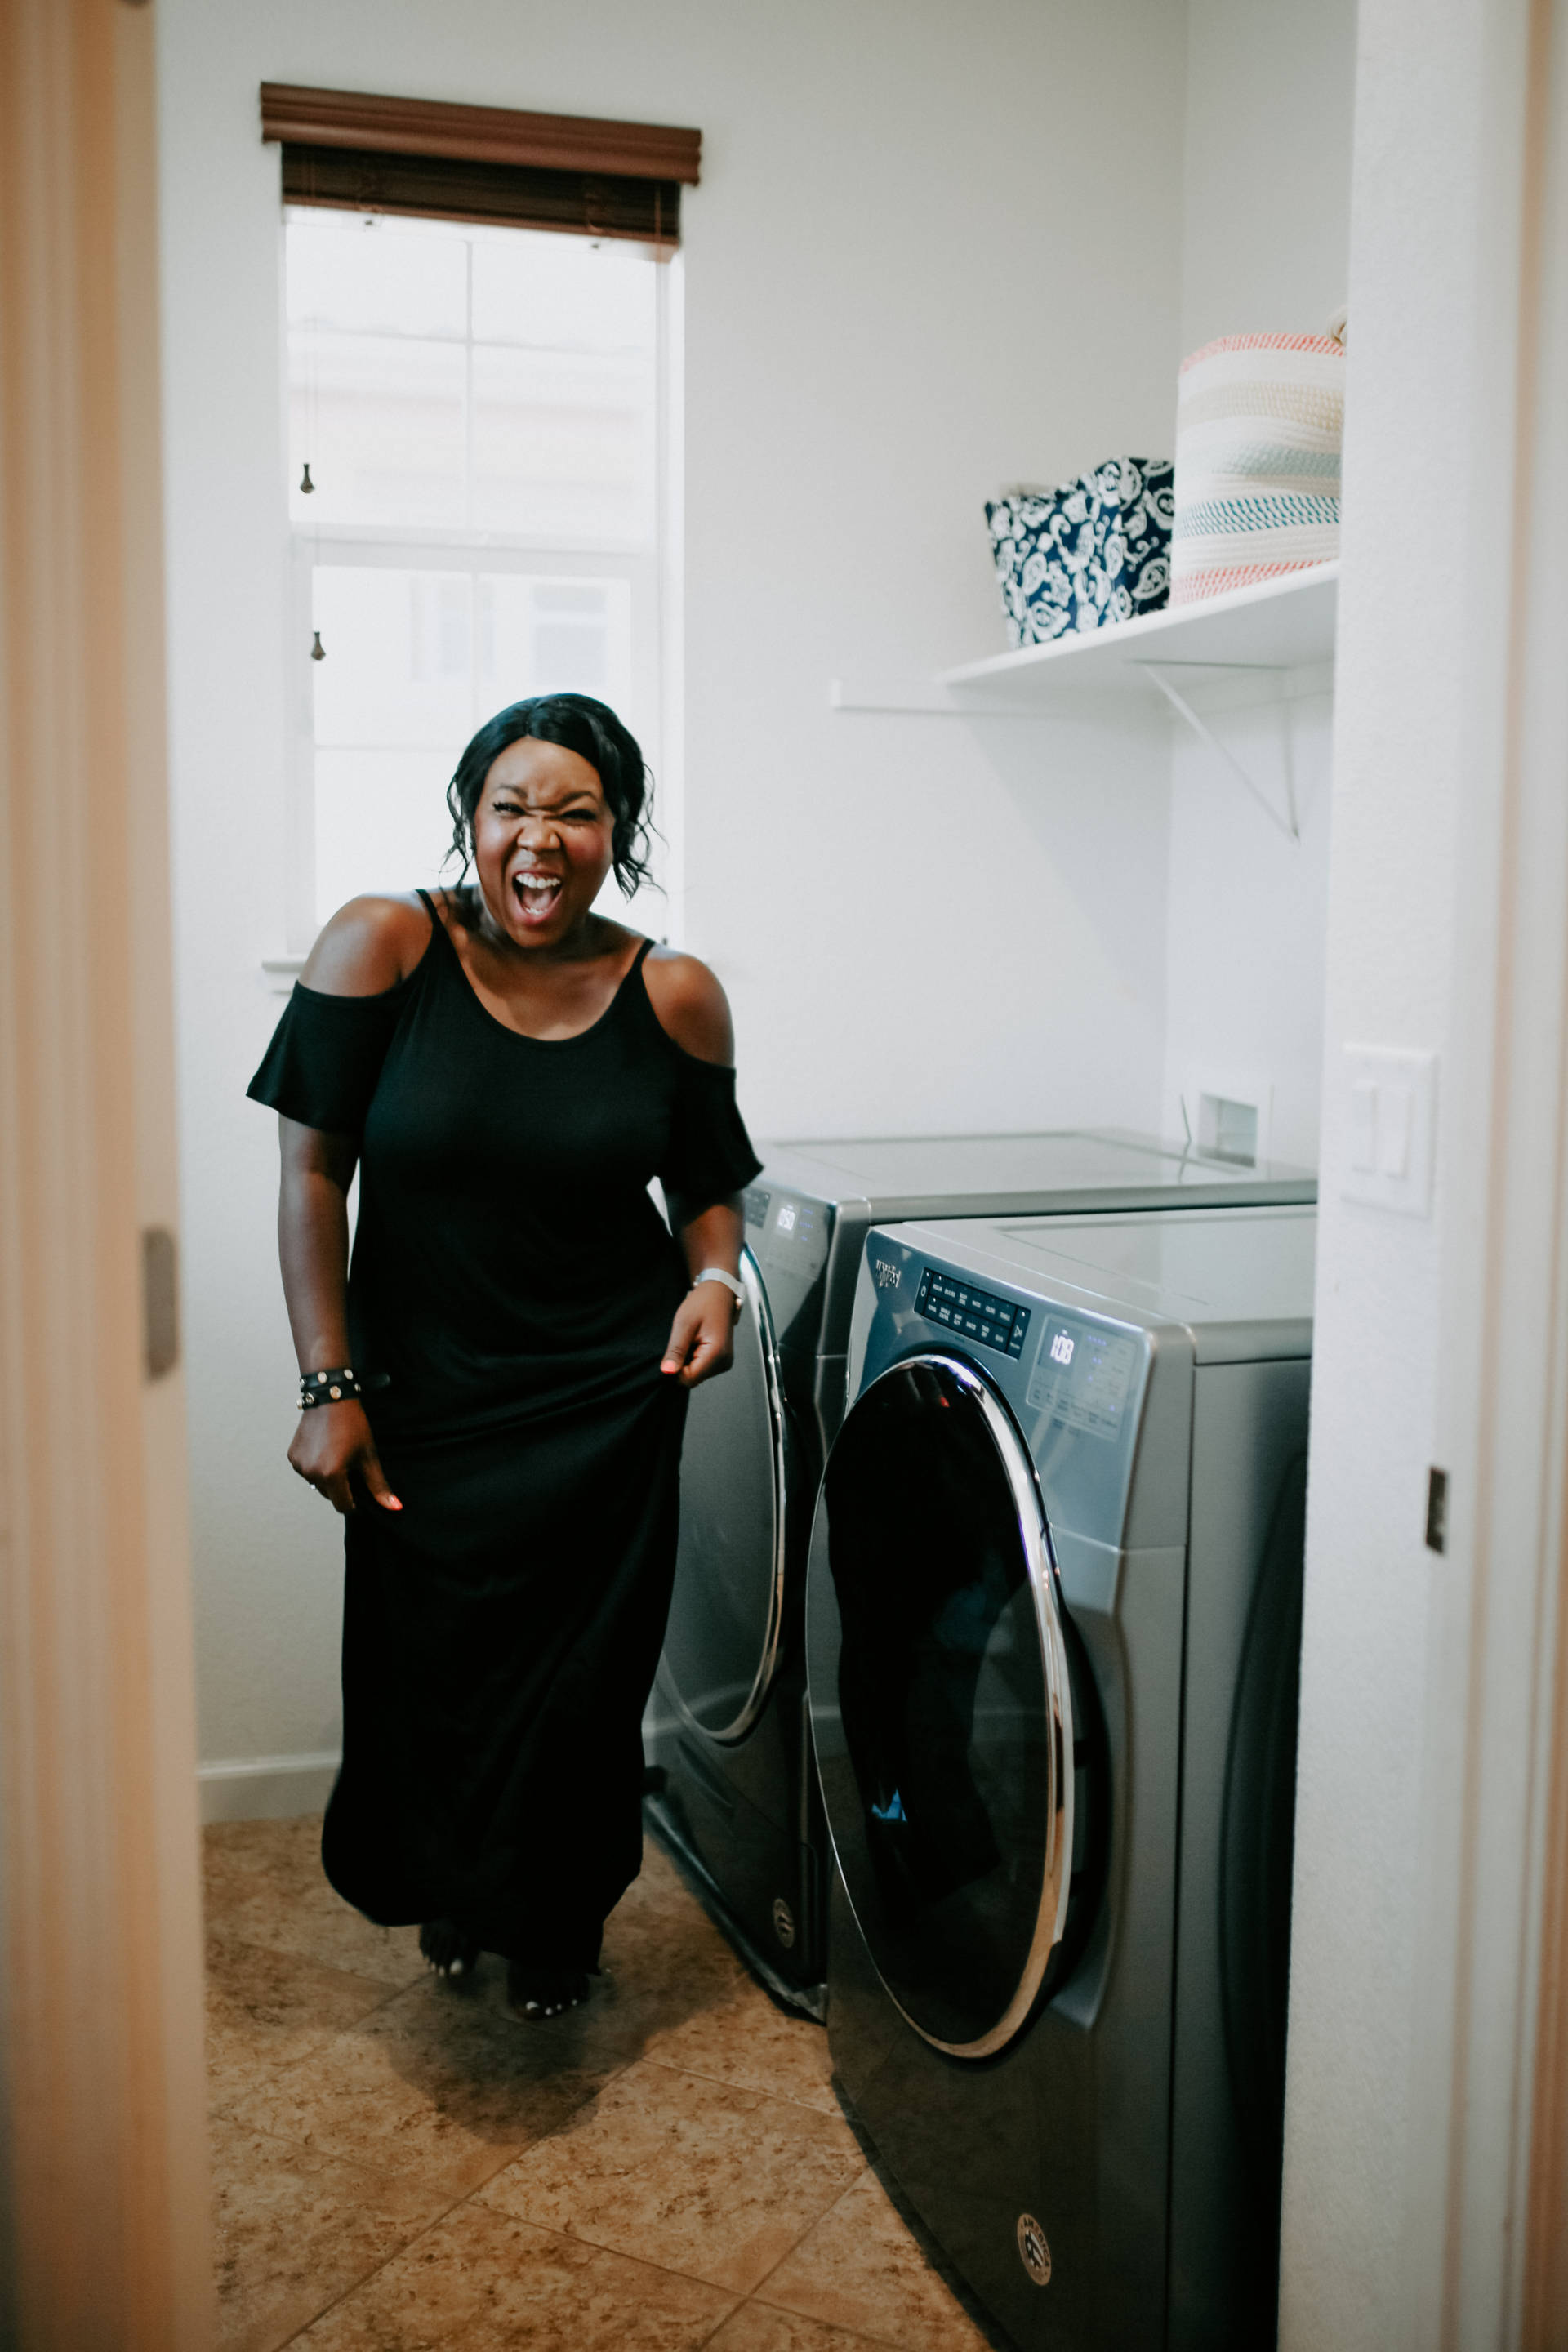 Ruthie Ridley Blog Whirl Pool Load & Go Washer and Dryer